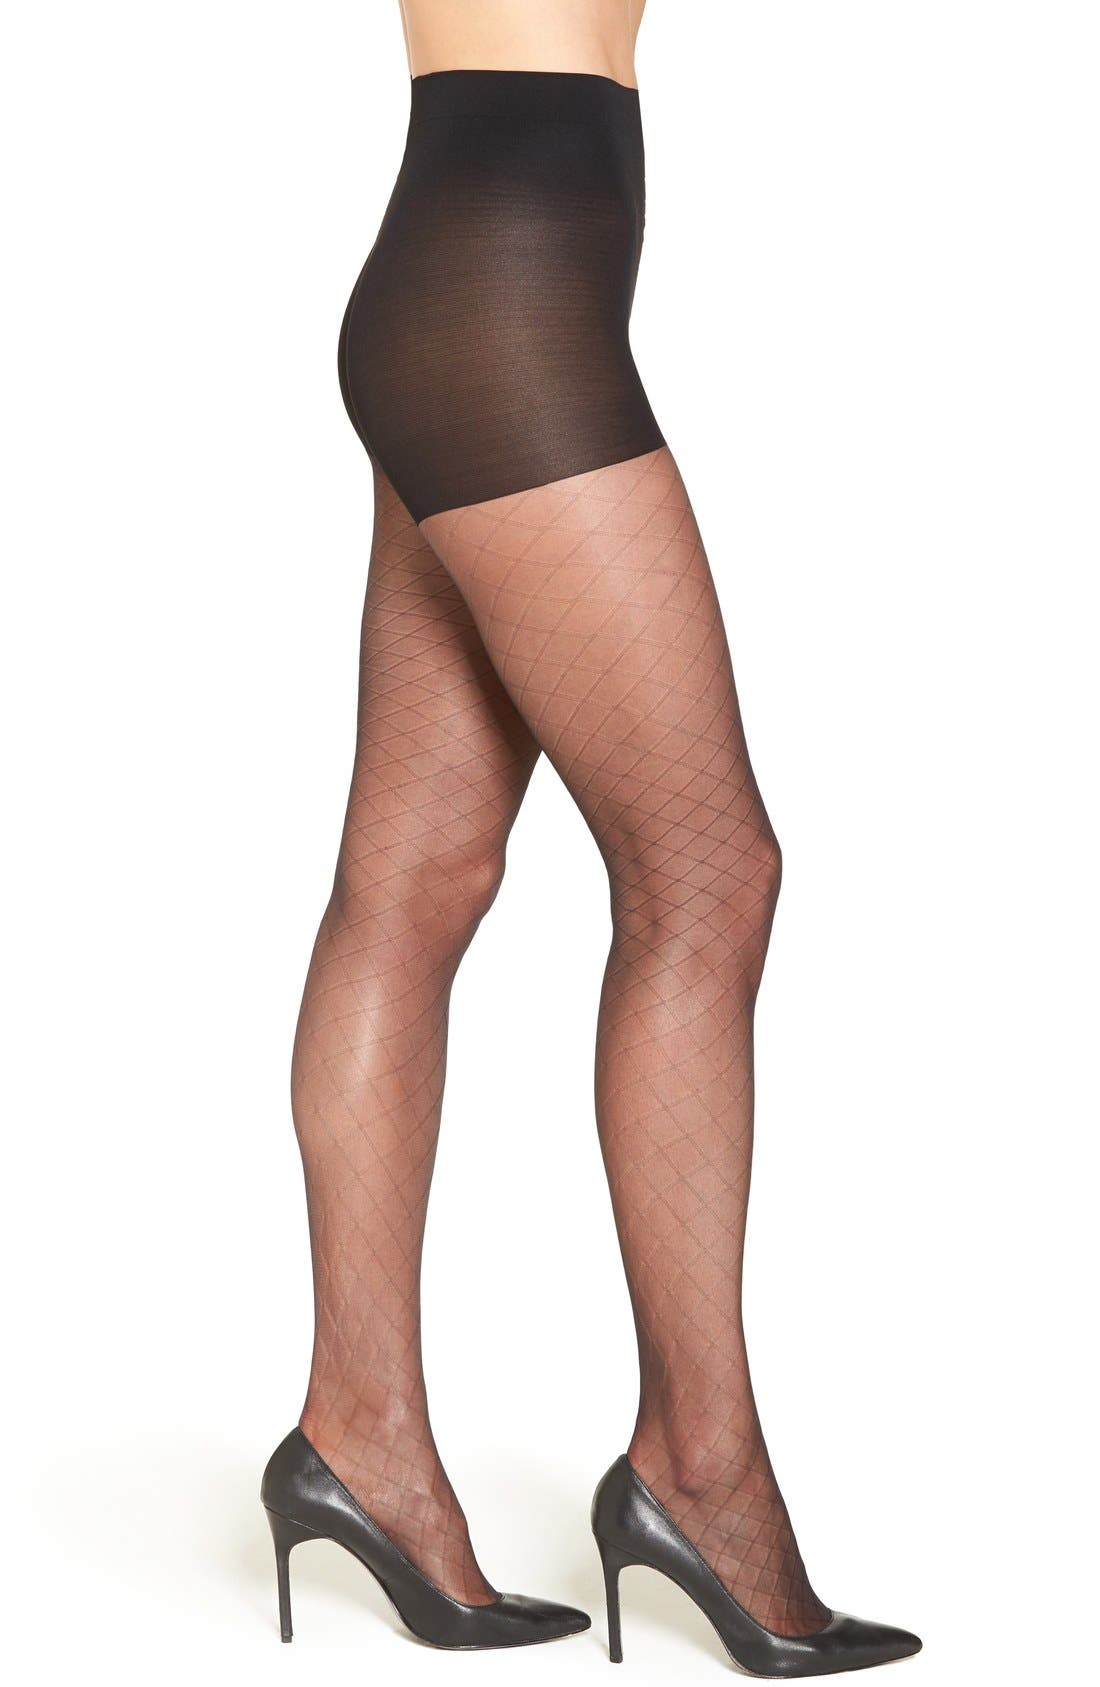 Diamond Knit Sheer Pantyhose,                             Main thumbnail 1, color,                             BLACK